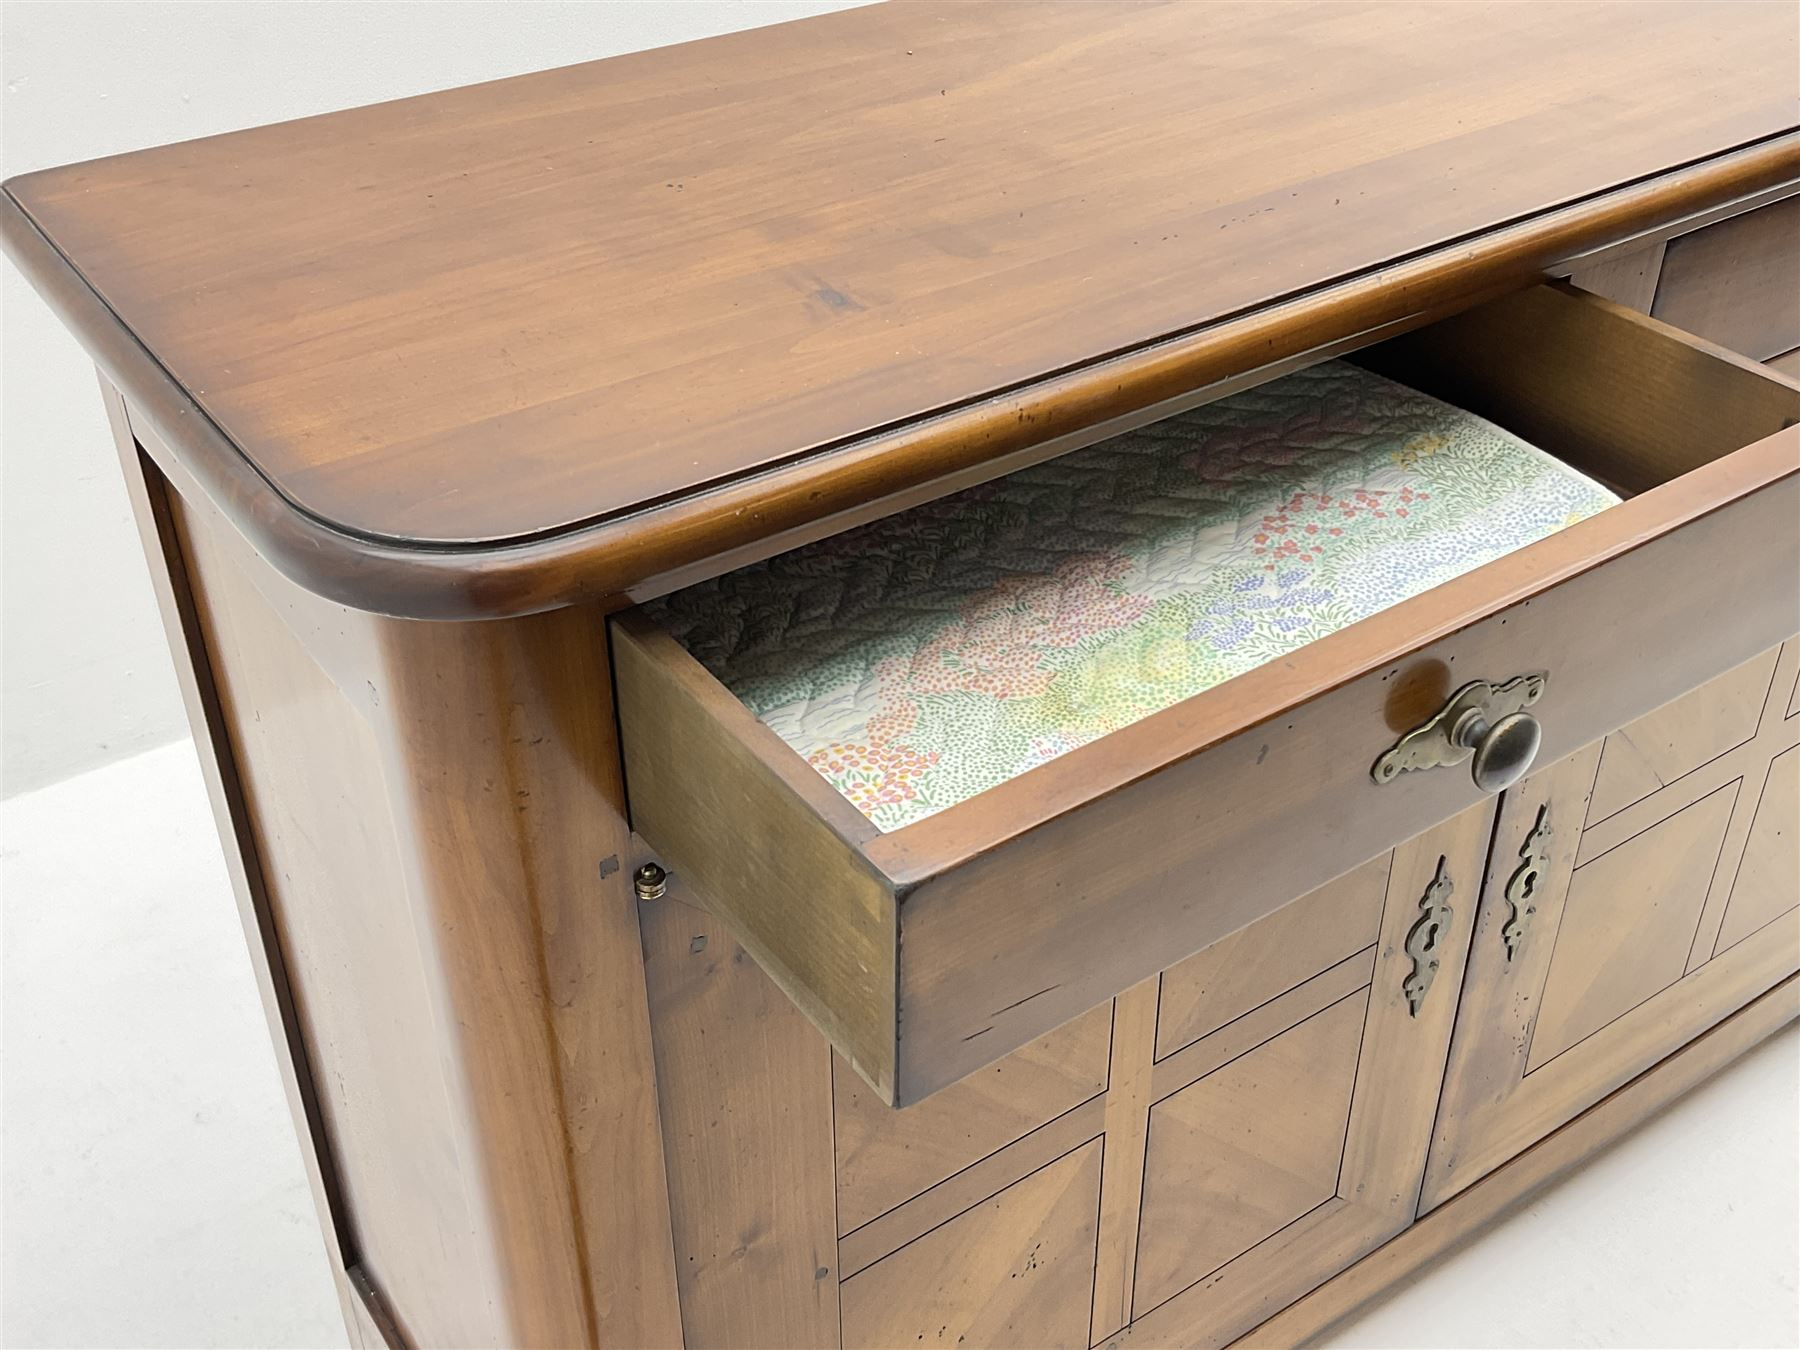 French cherry wood sideboard - Image 3 of 3